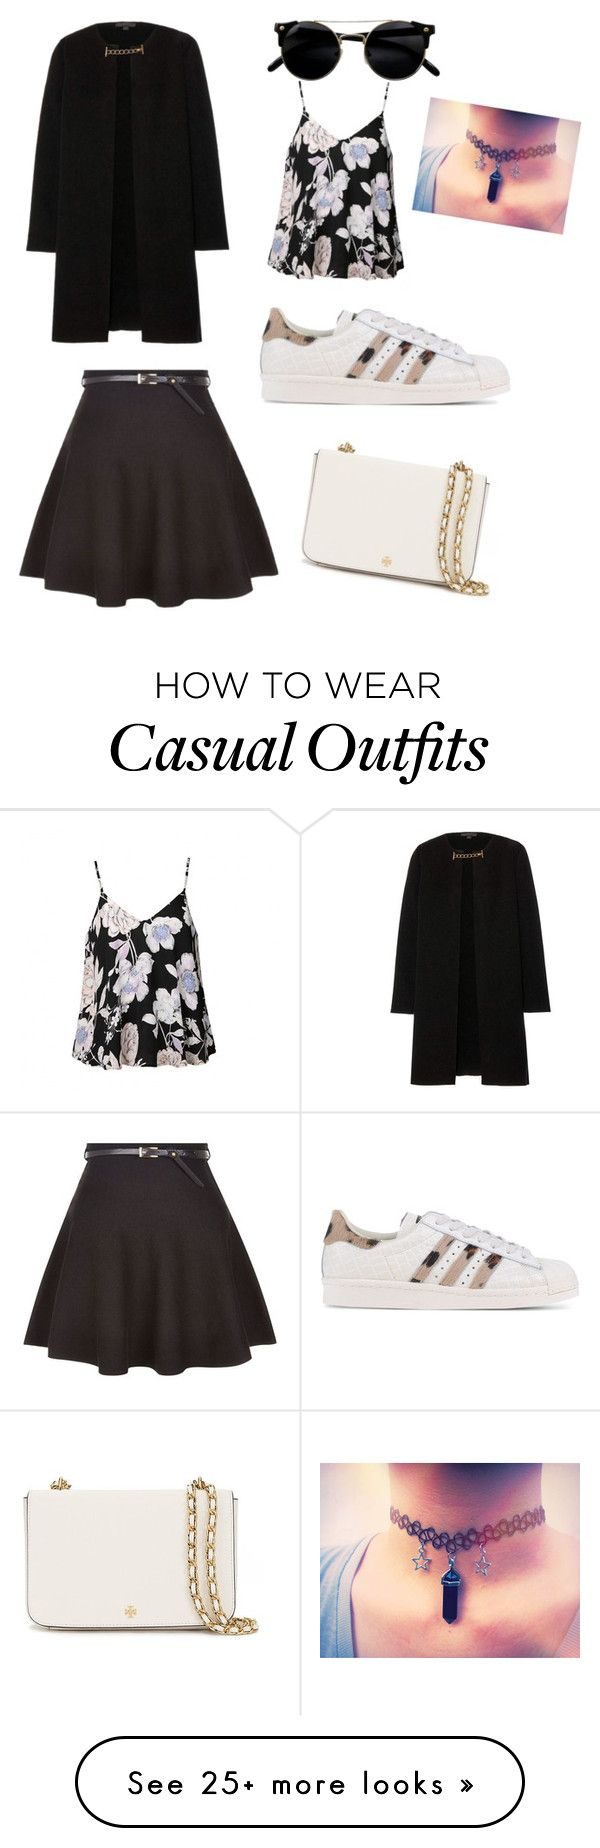 """Casual"" by melisa-alvear on Polyvore featuring Burberry, Ally Fashion, adidas Originals and Tory Burch"